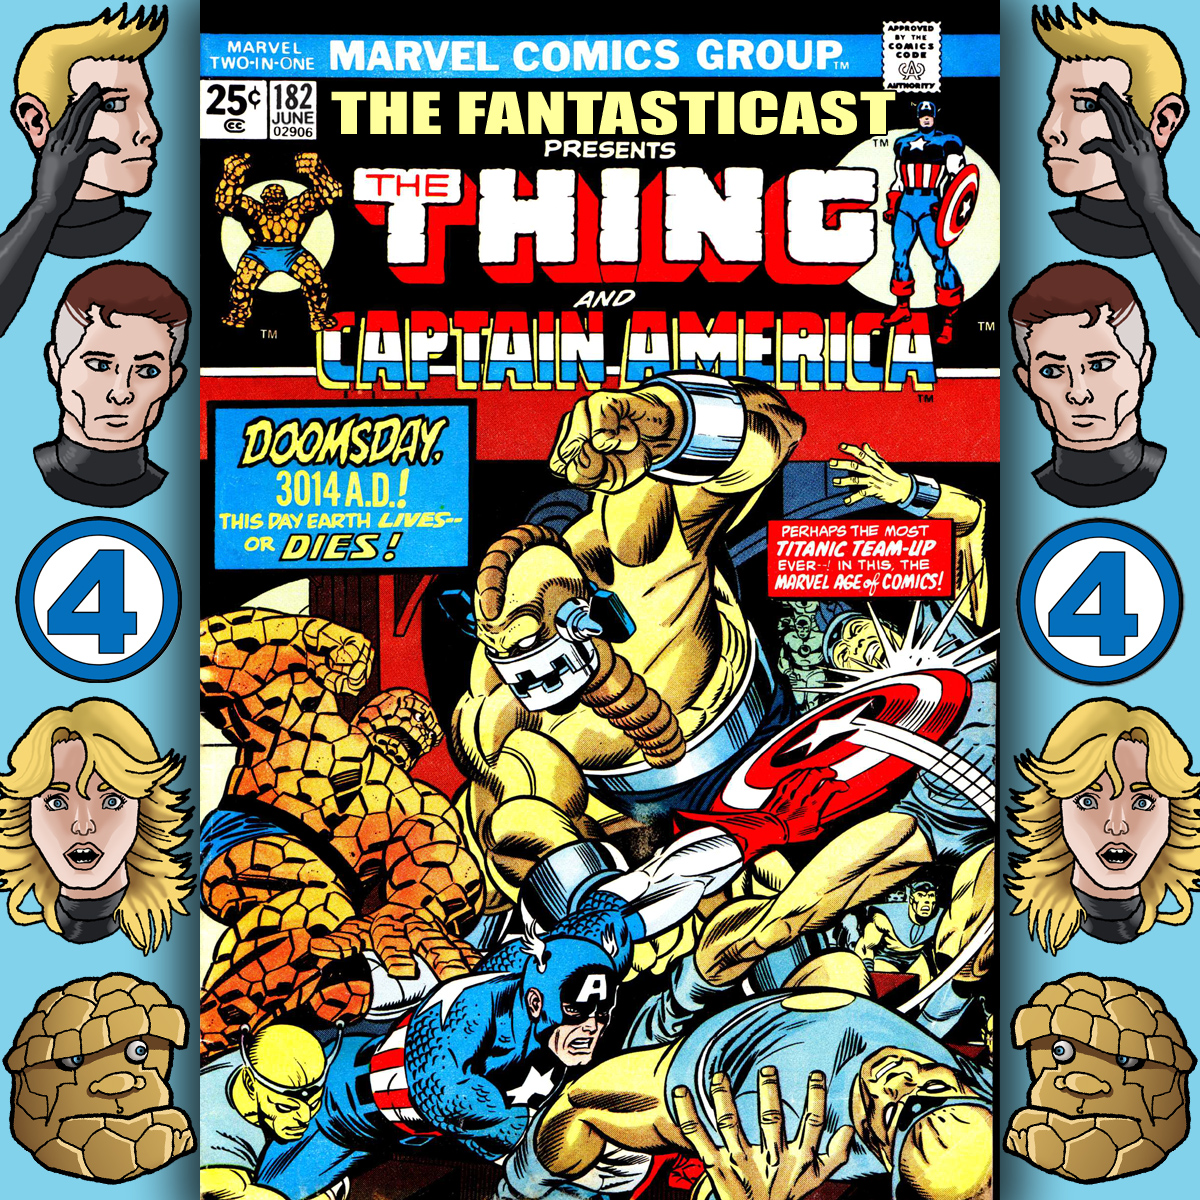 Episode 182: Marvel Two-in-One #4 - Doomsday 3014